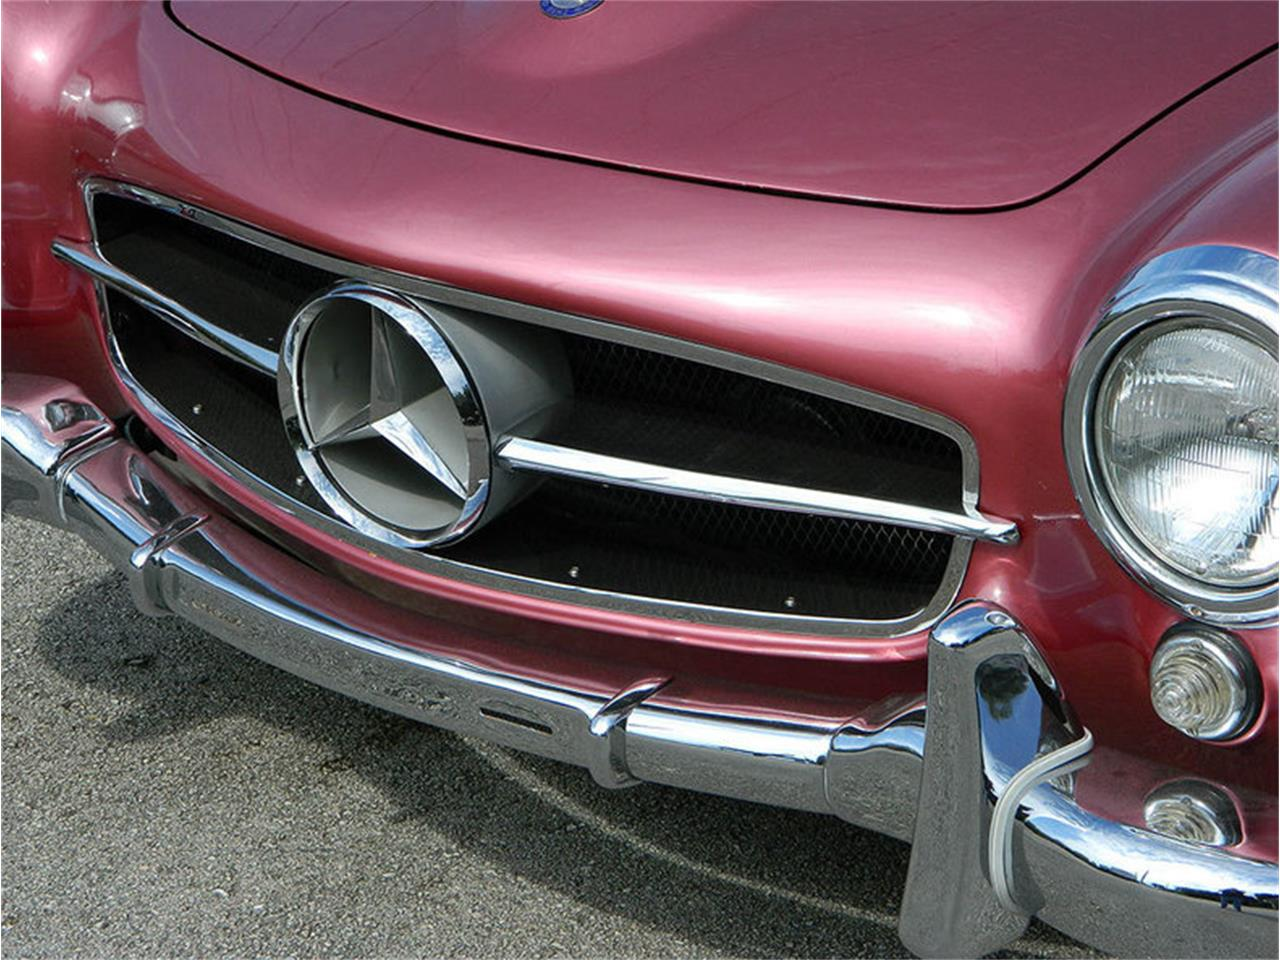 Large Picture of Classic '57 Mercedes-Benz 190SL located in Fort Lauderdale Florida - $225,900.00 - M8SB